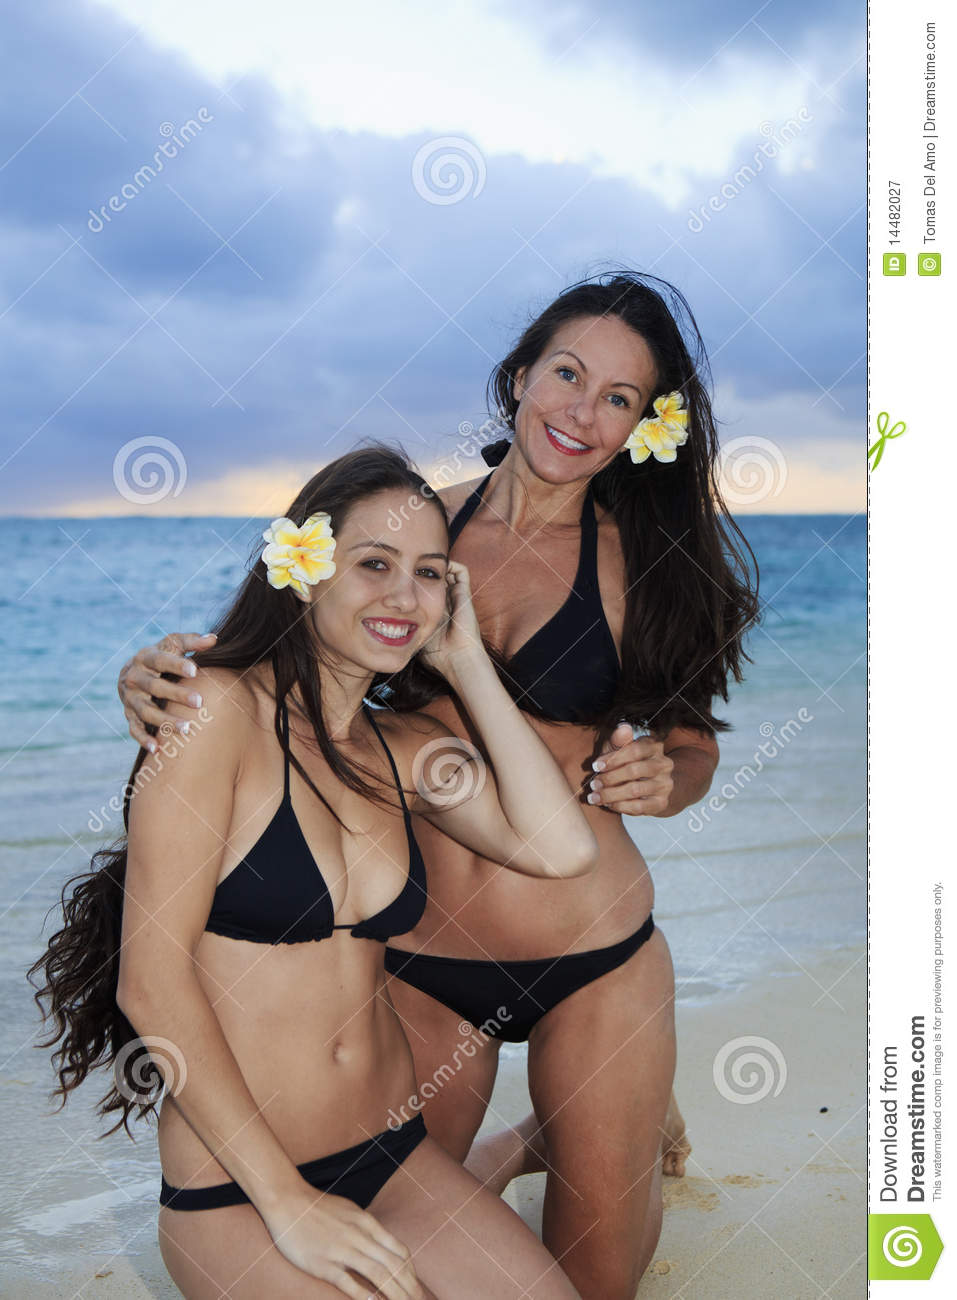 Frangipani spa flowers stock photo image 14654190 -  Mother And Daughter On The Beach Royalty Free Stock Photography